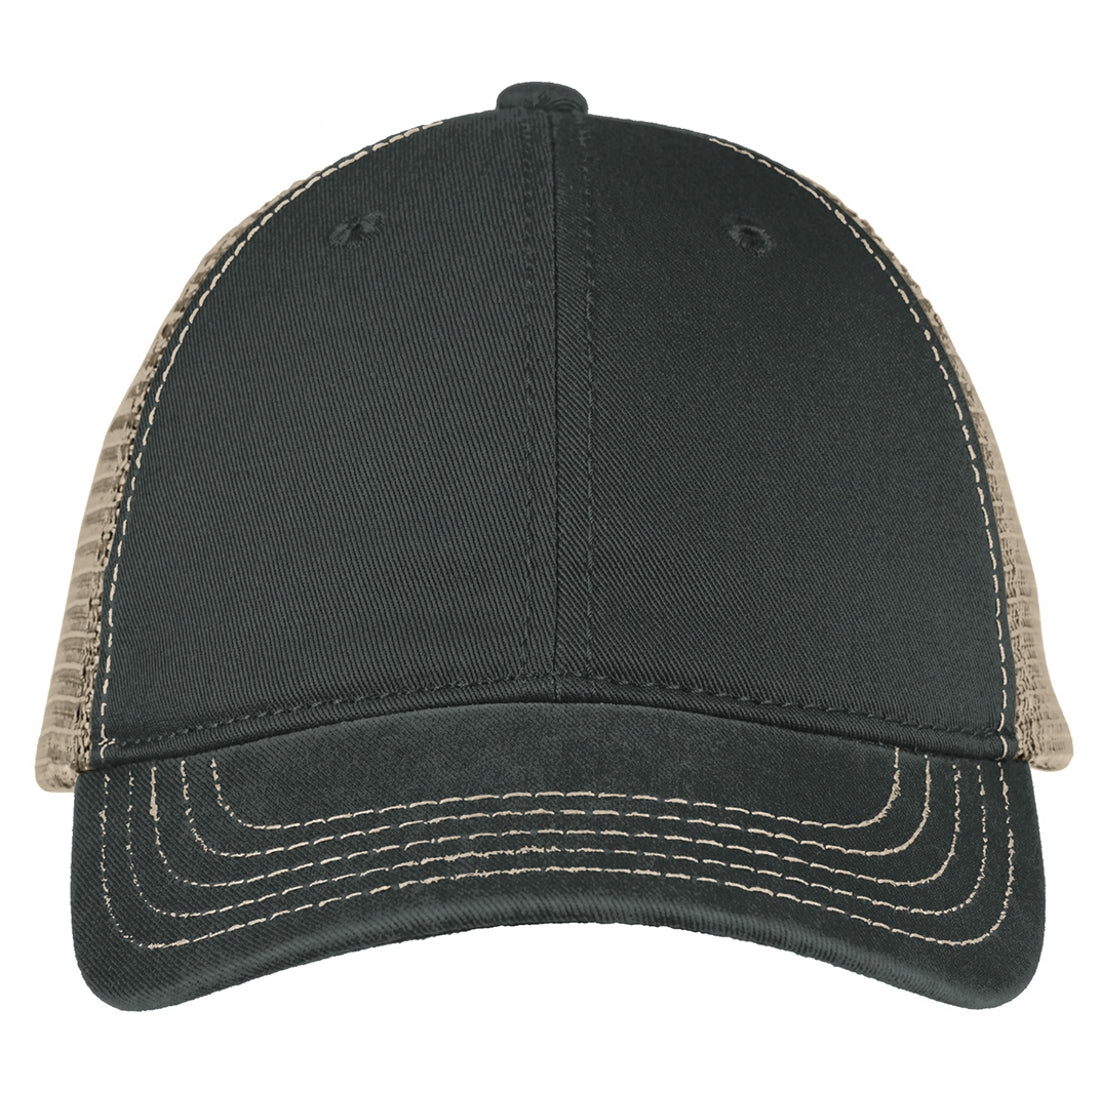 Men's Super Soft Mesh Back Cap - Black/ Khaki